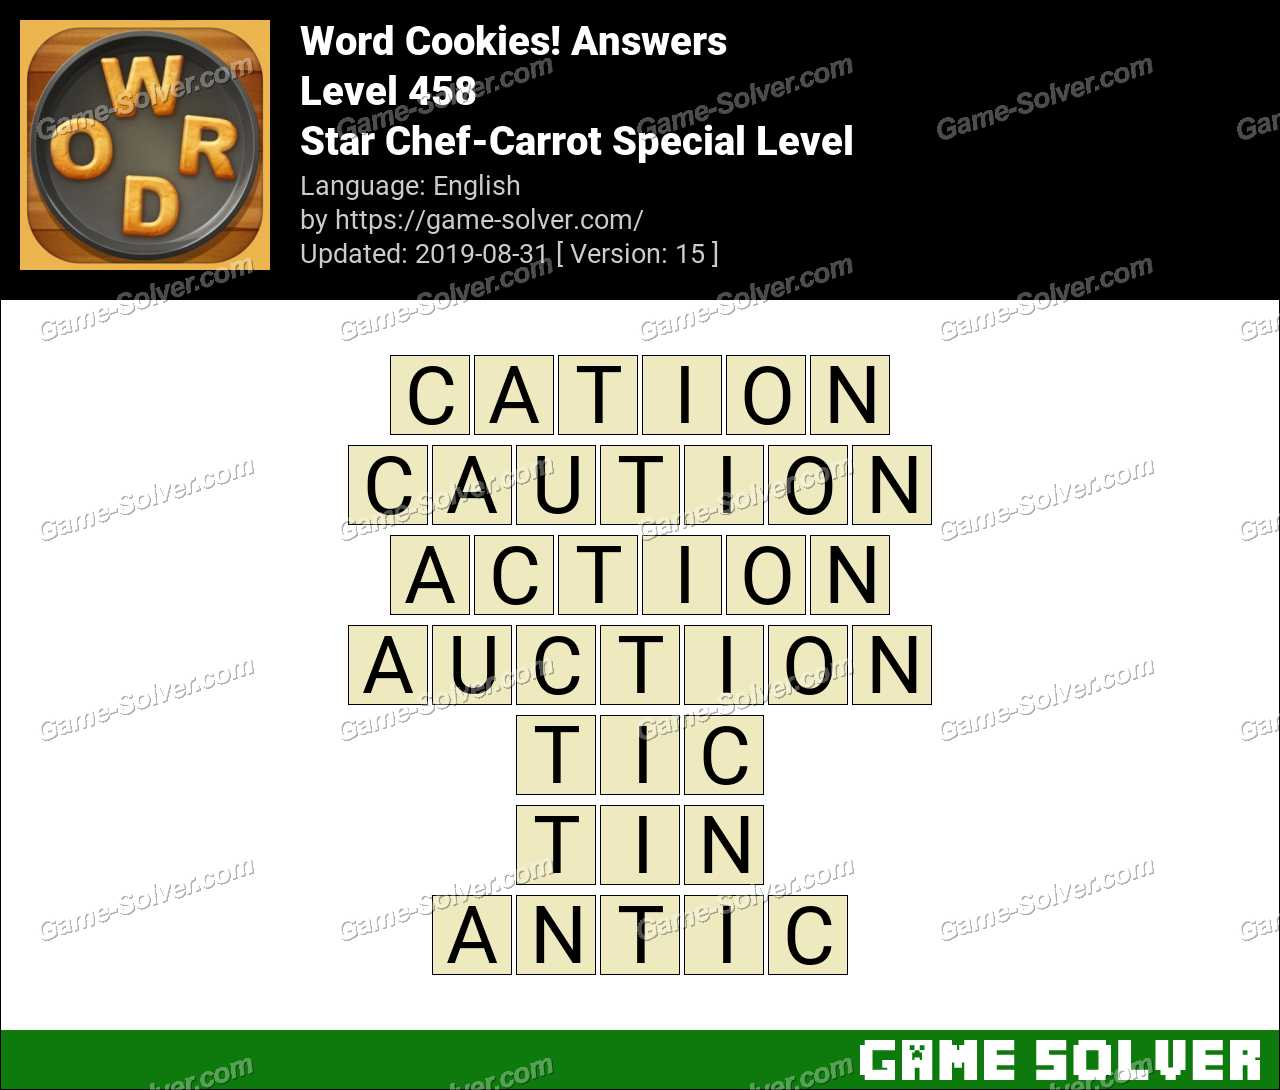 Word Cookies Star Chef-Carrot Special Level Answers